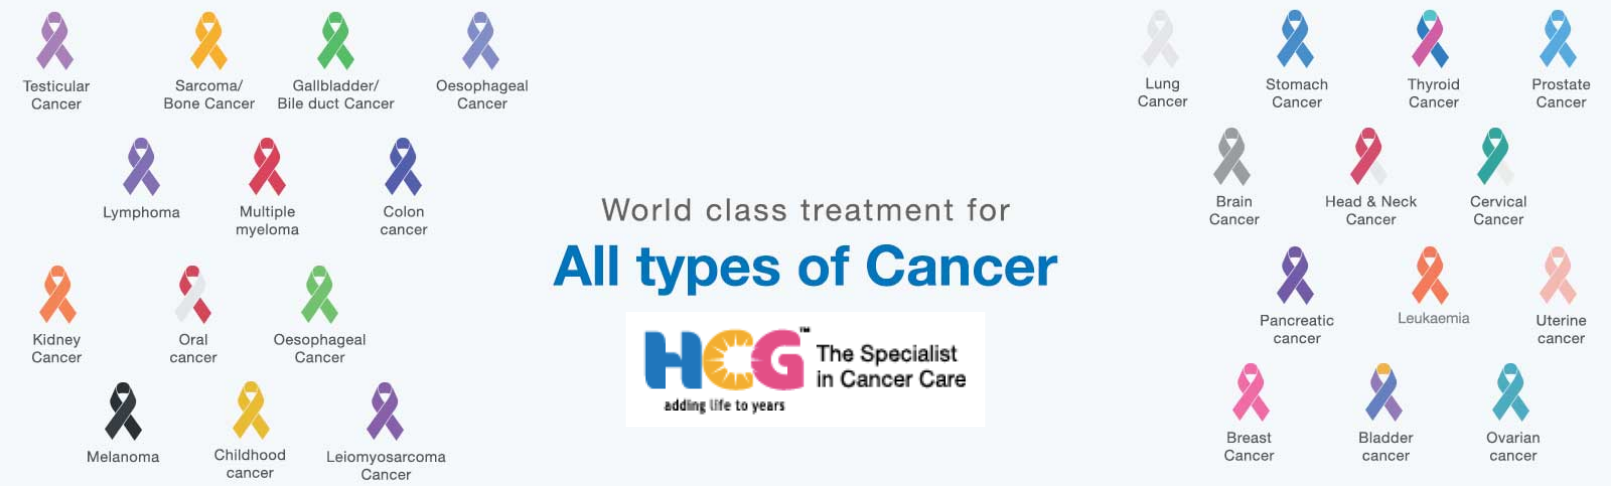 HCG Cancer hospital in India